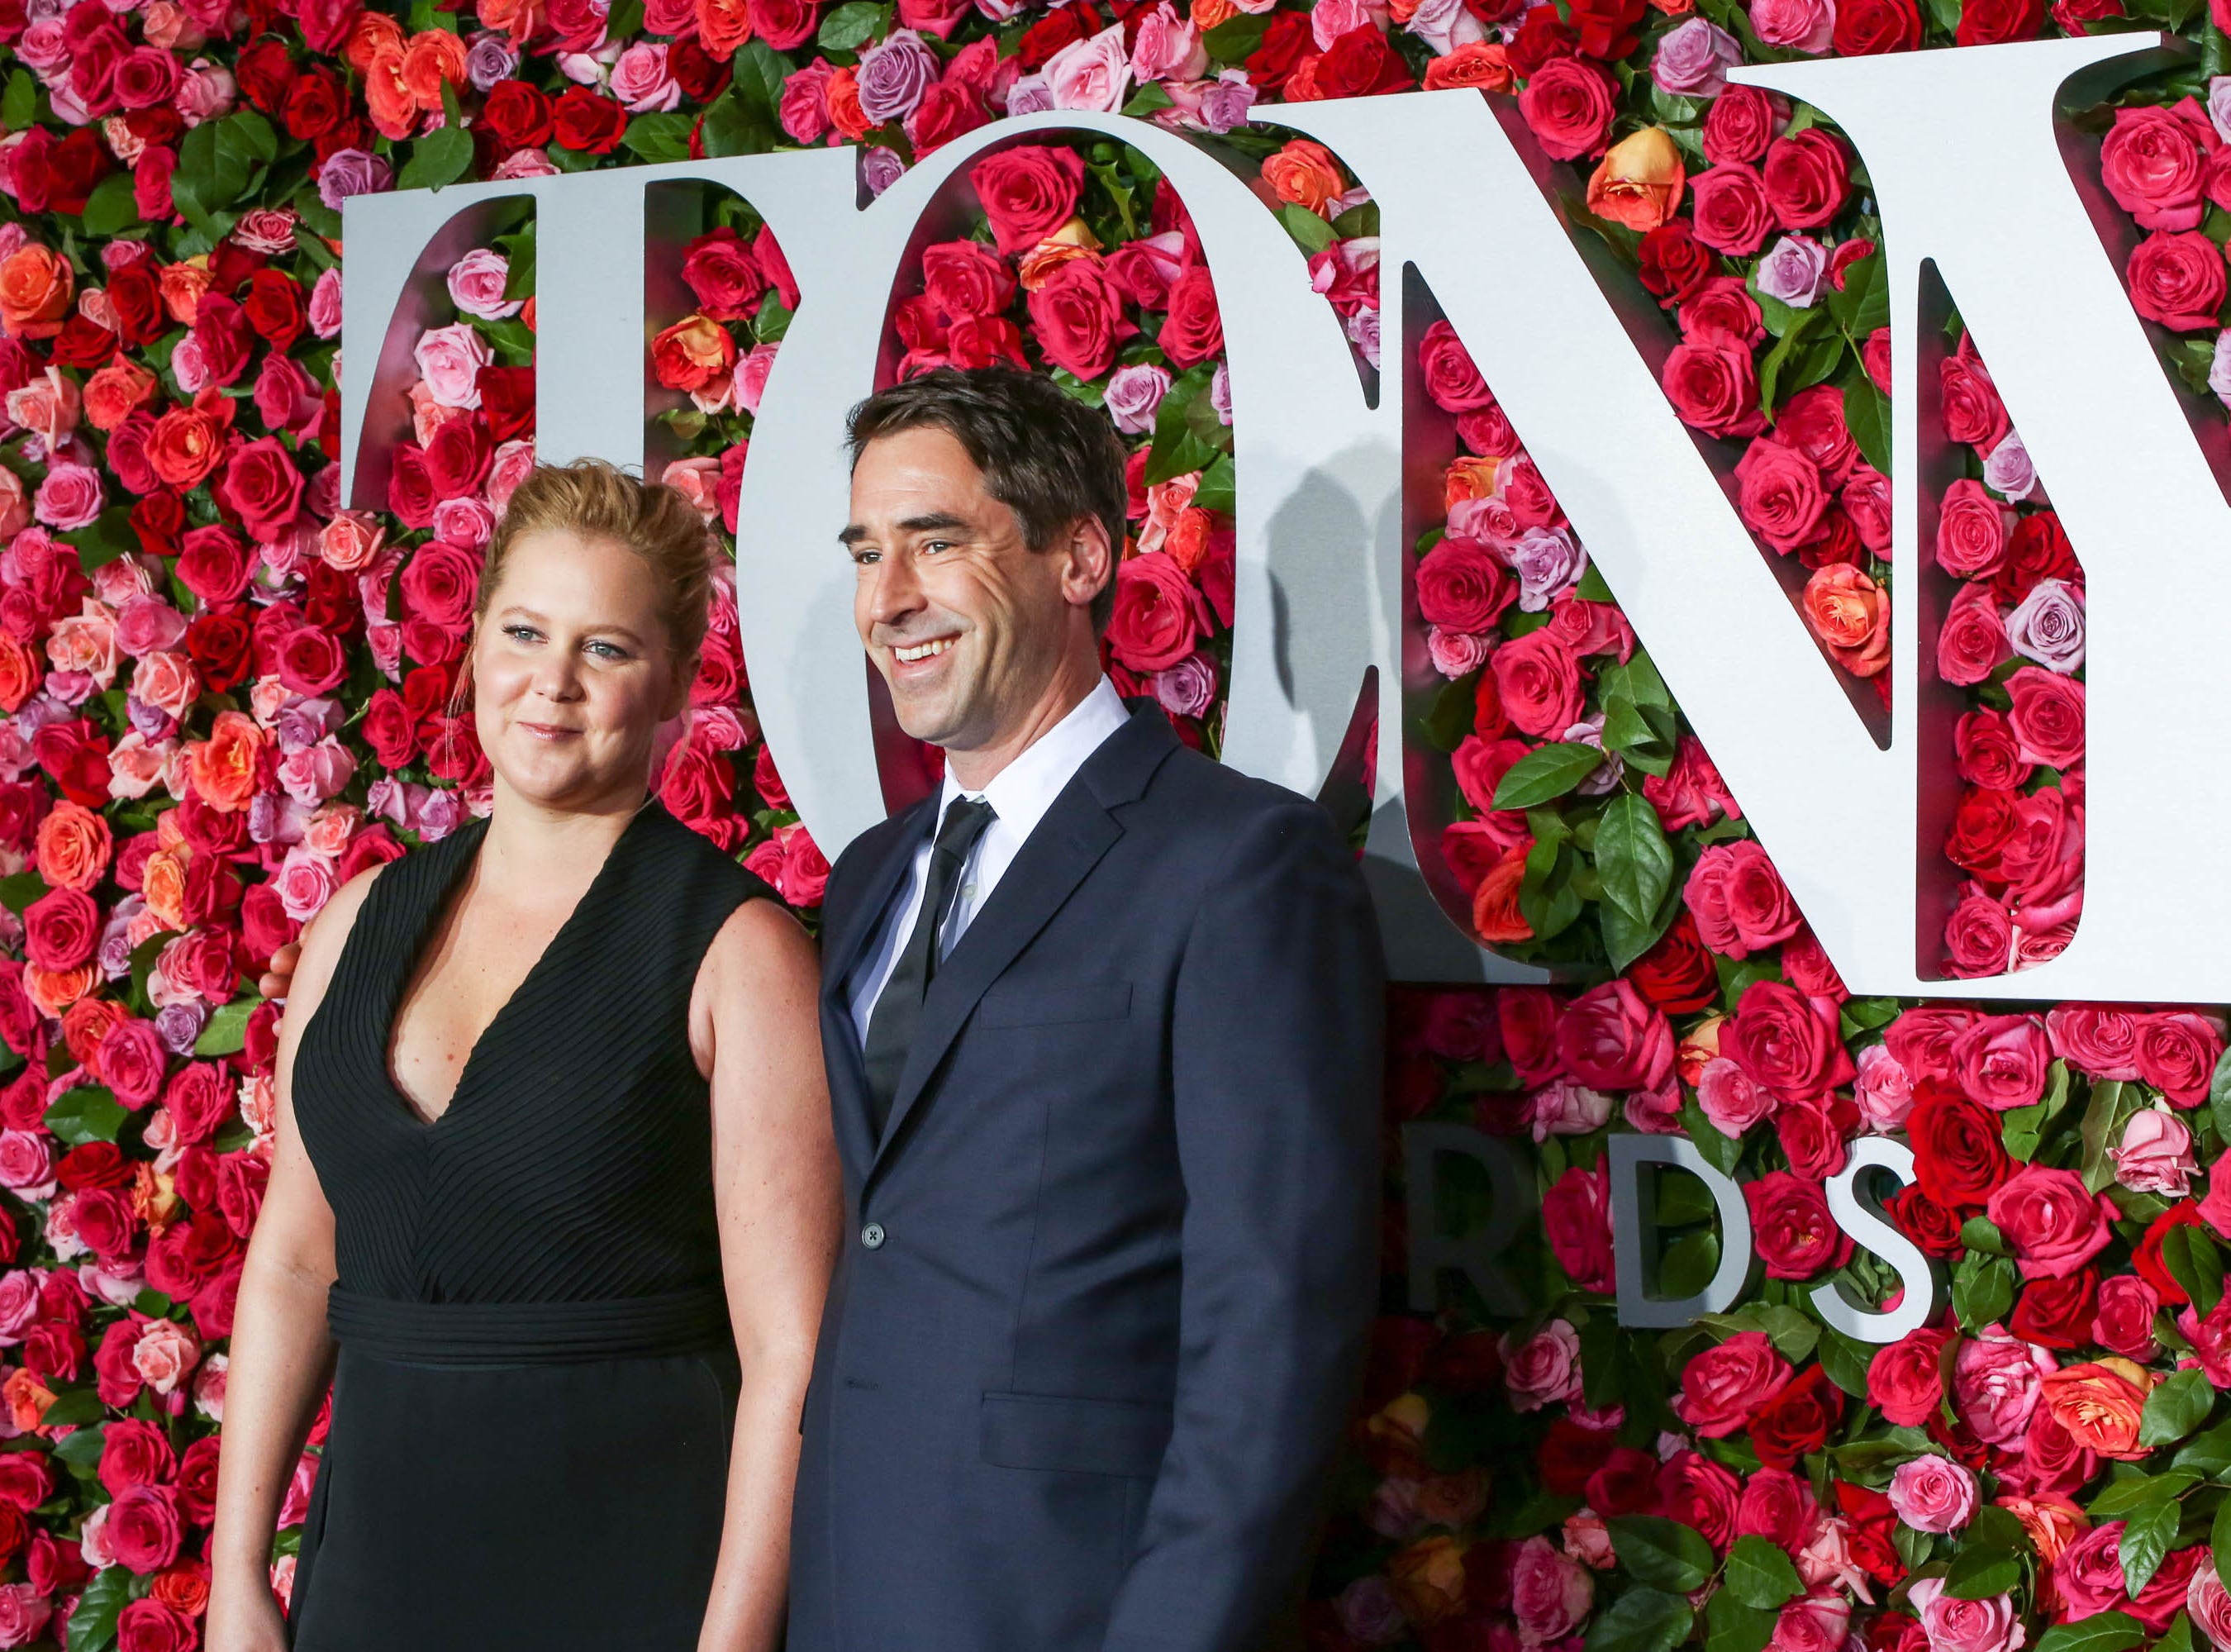 Amy Schumer is pregnant with her first child with husband Chris Fischer